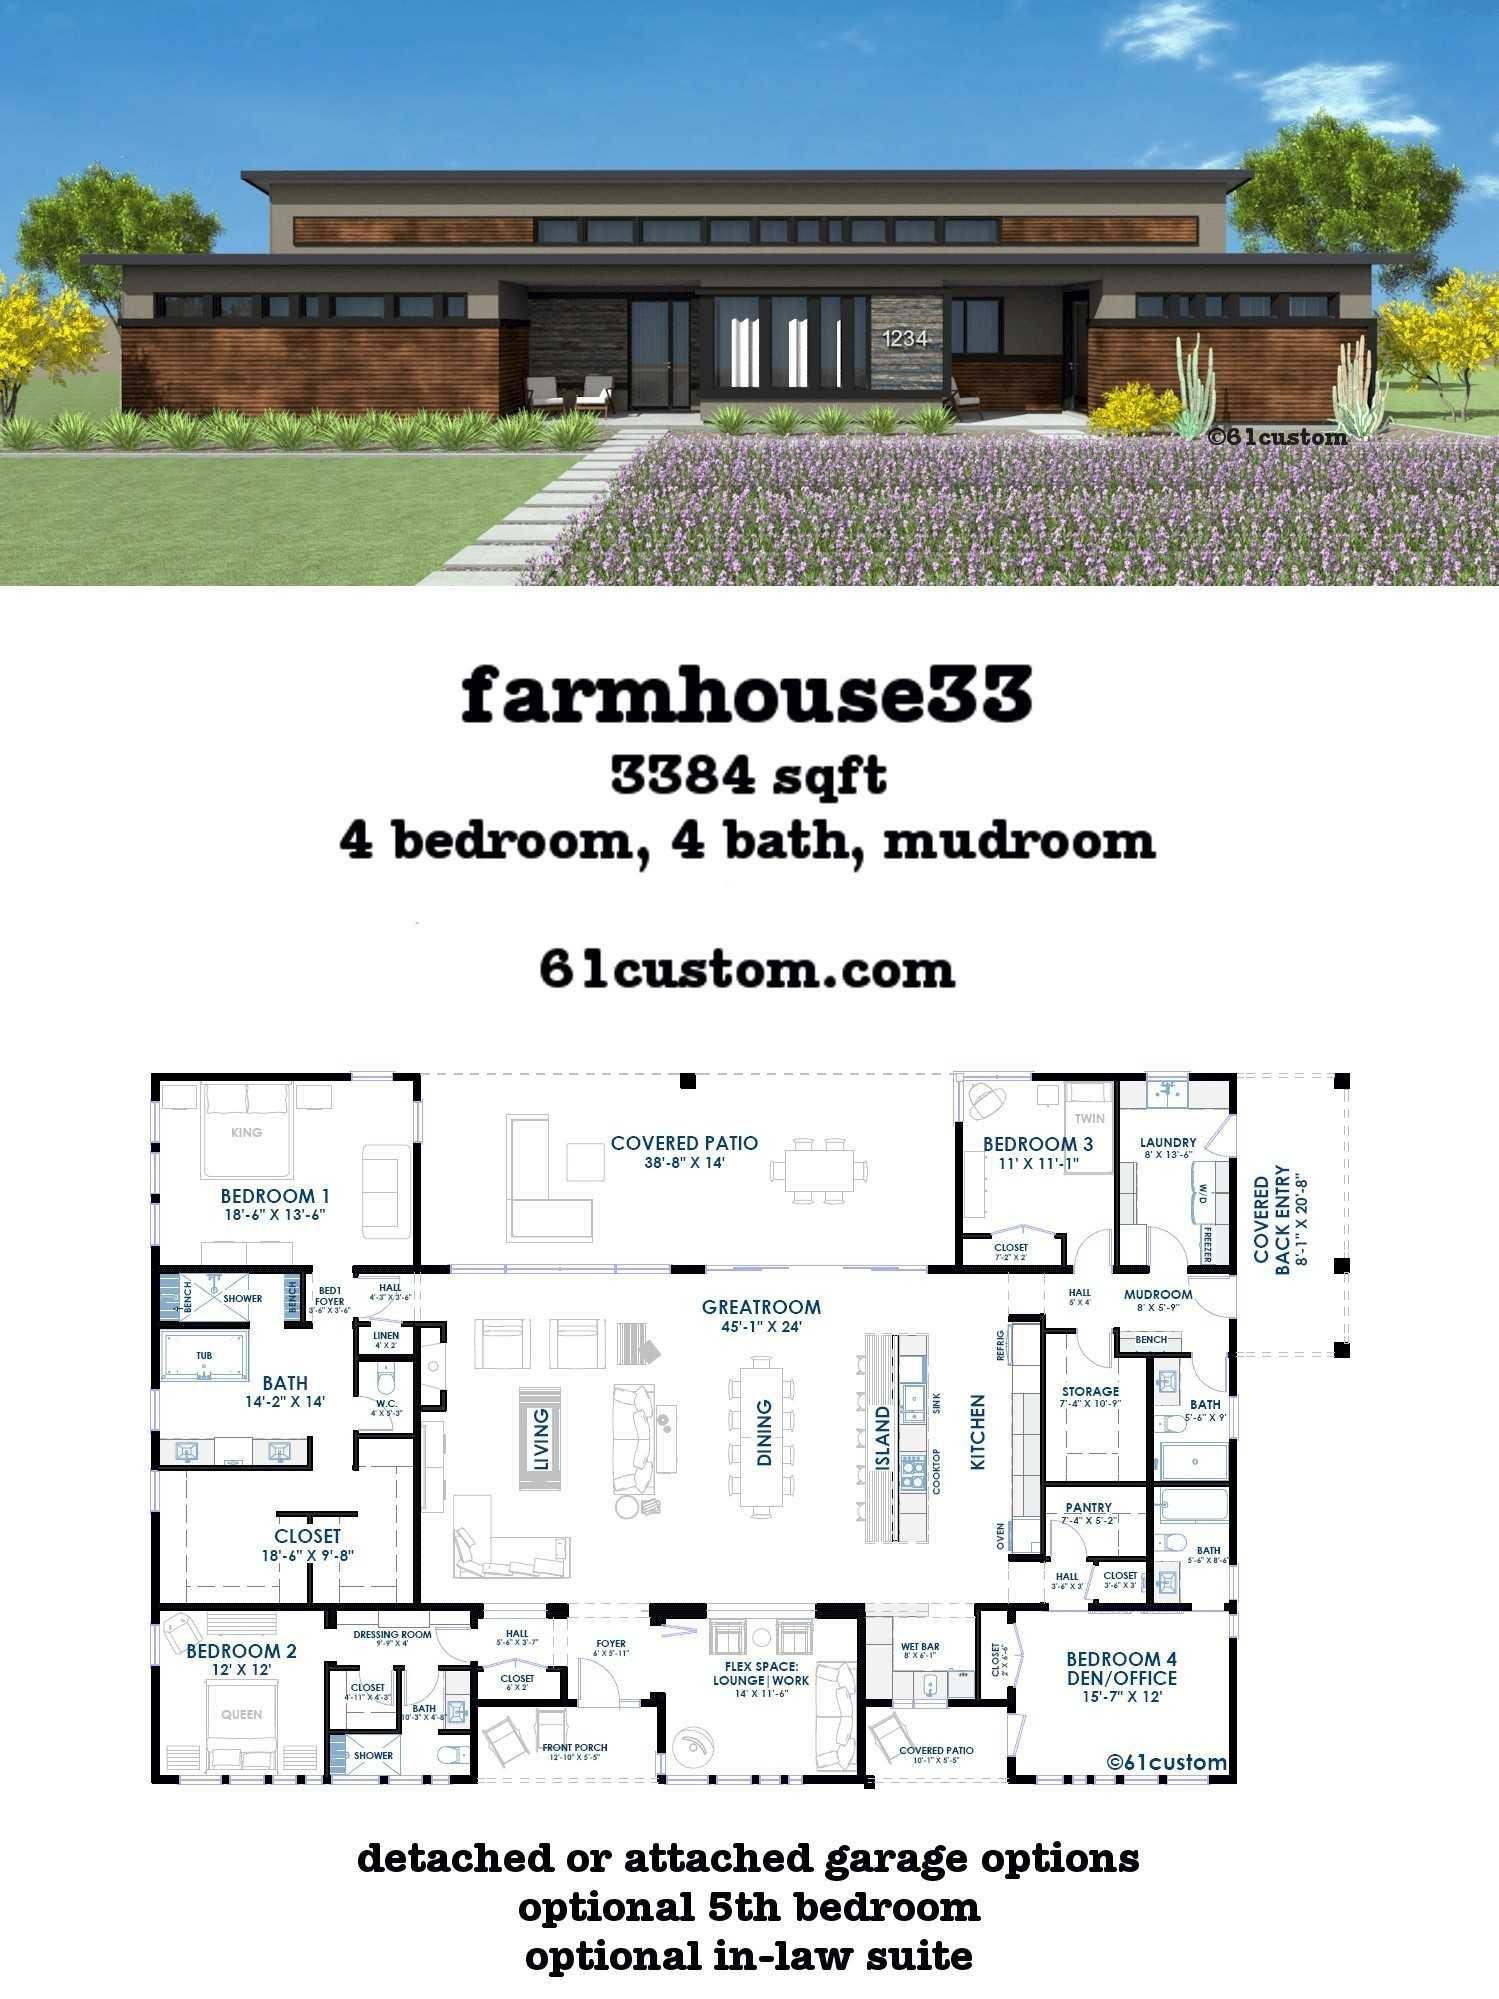 Single Story Ranch Farmhouse Plans Beautiful Two Room Plan House Elegant 2 Story House Plans With Basement B Modern Farmhouse Plans Farmhouse Plans House Plans